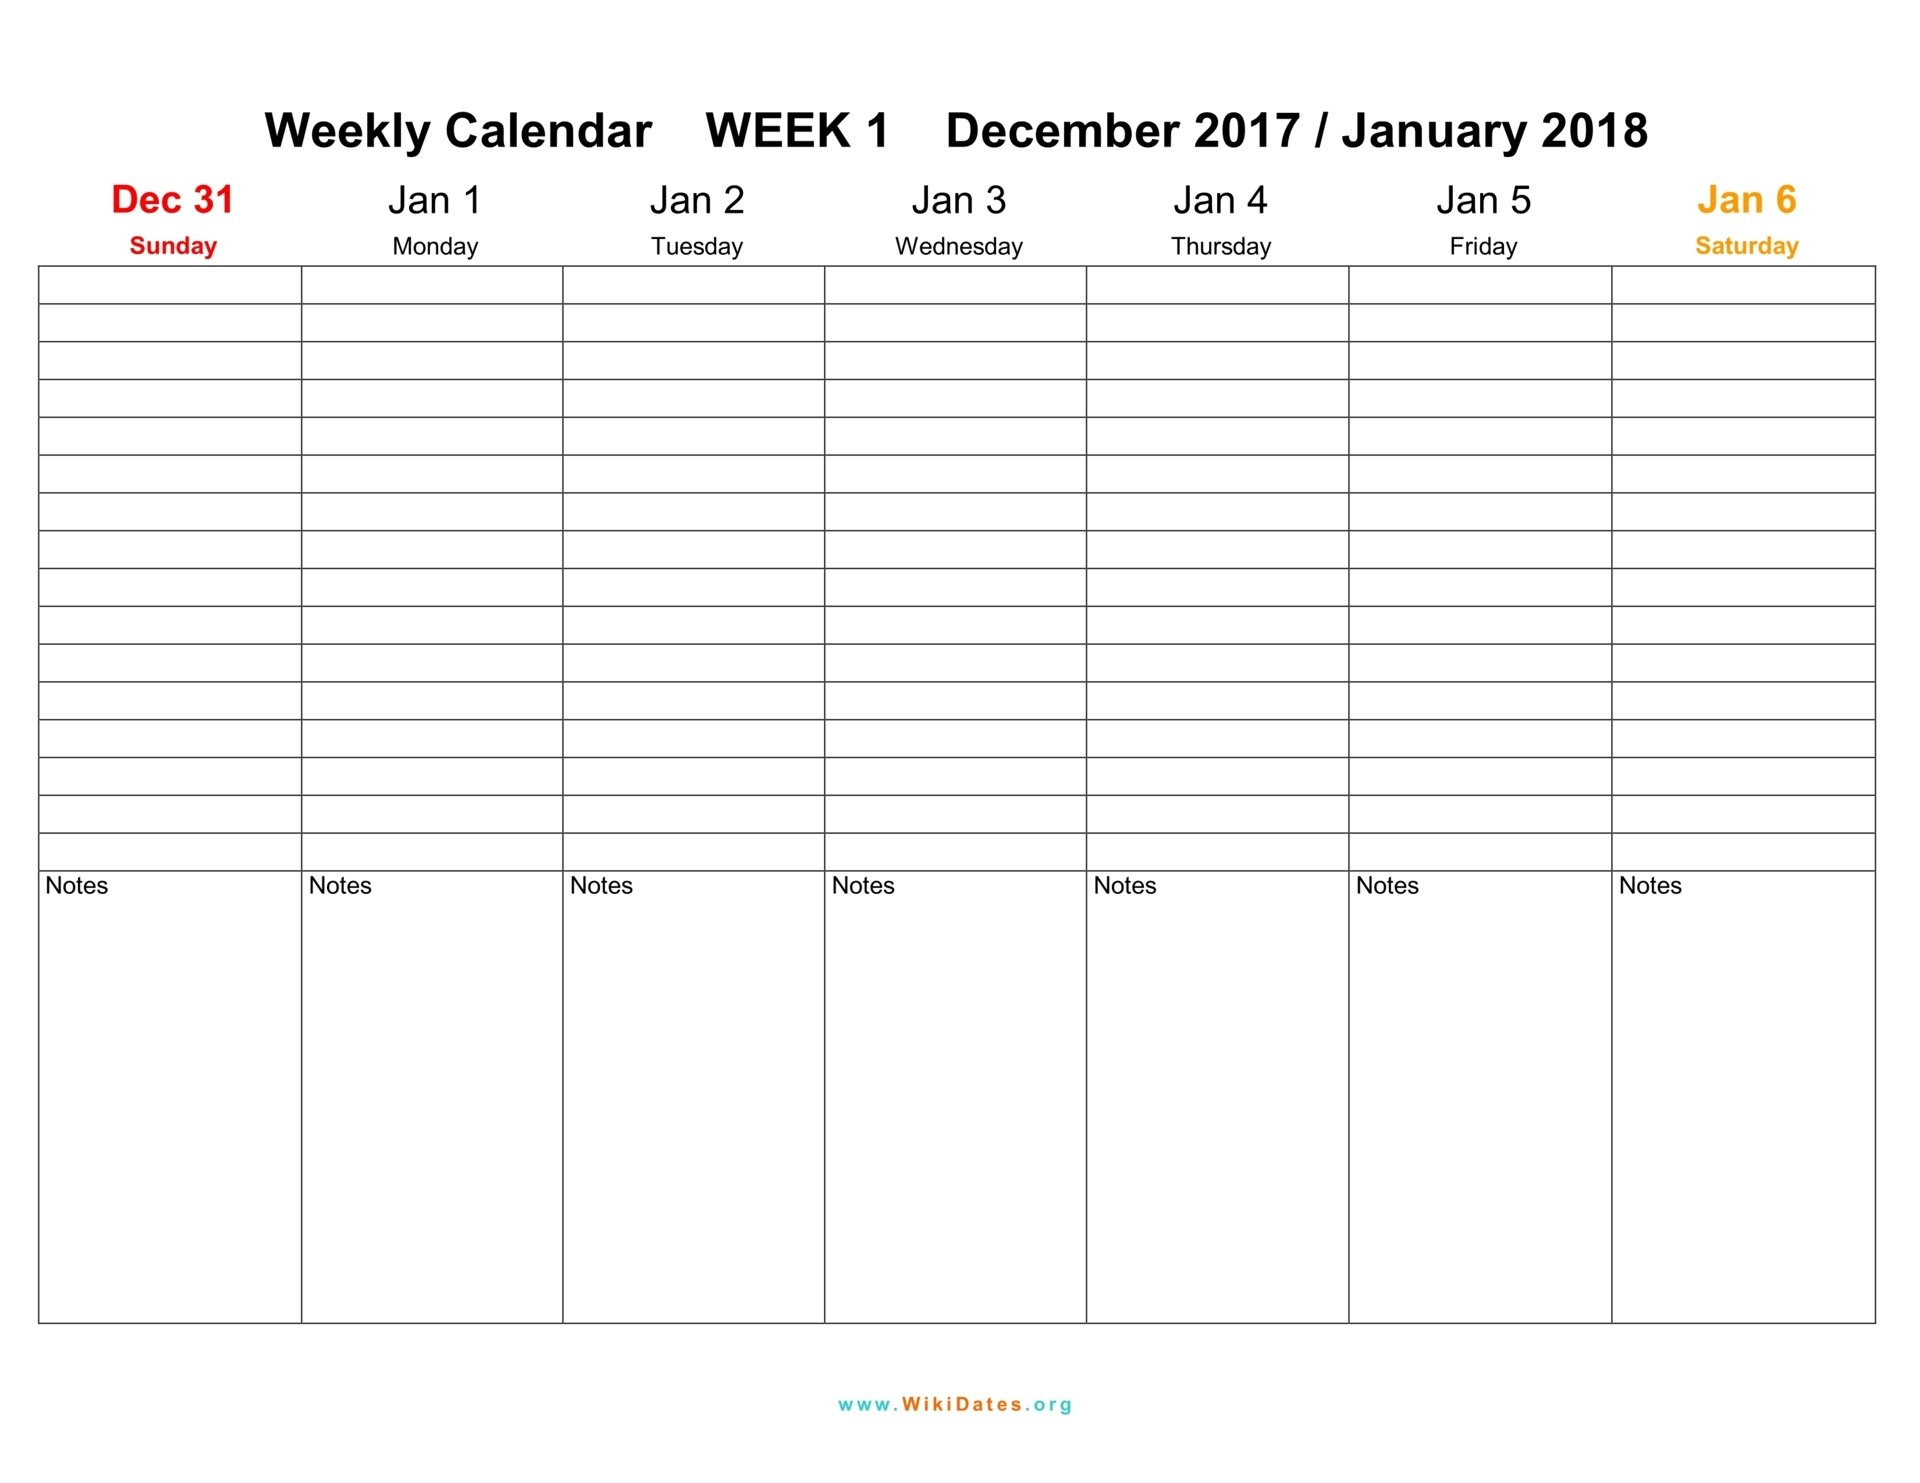 Weekly Calendar - Download Weekly Calendar 2017 And 2018 1 Week Calendar Printable